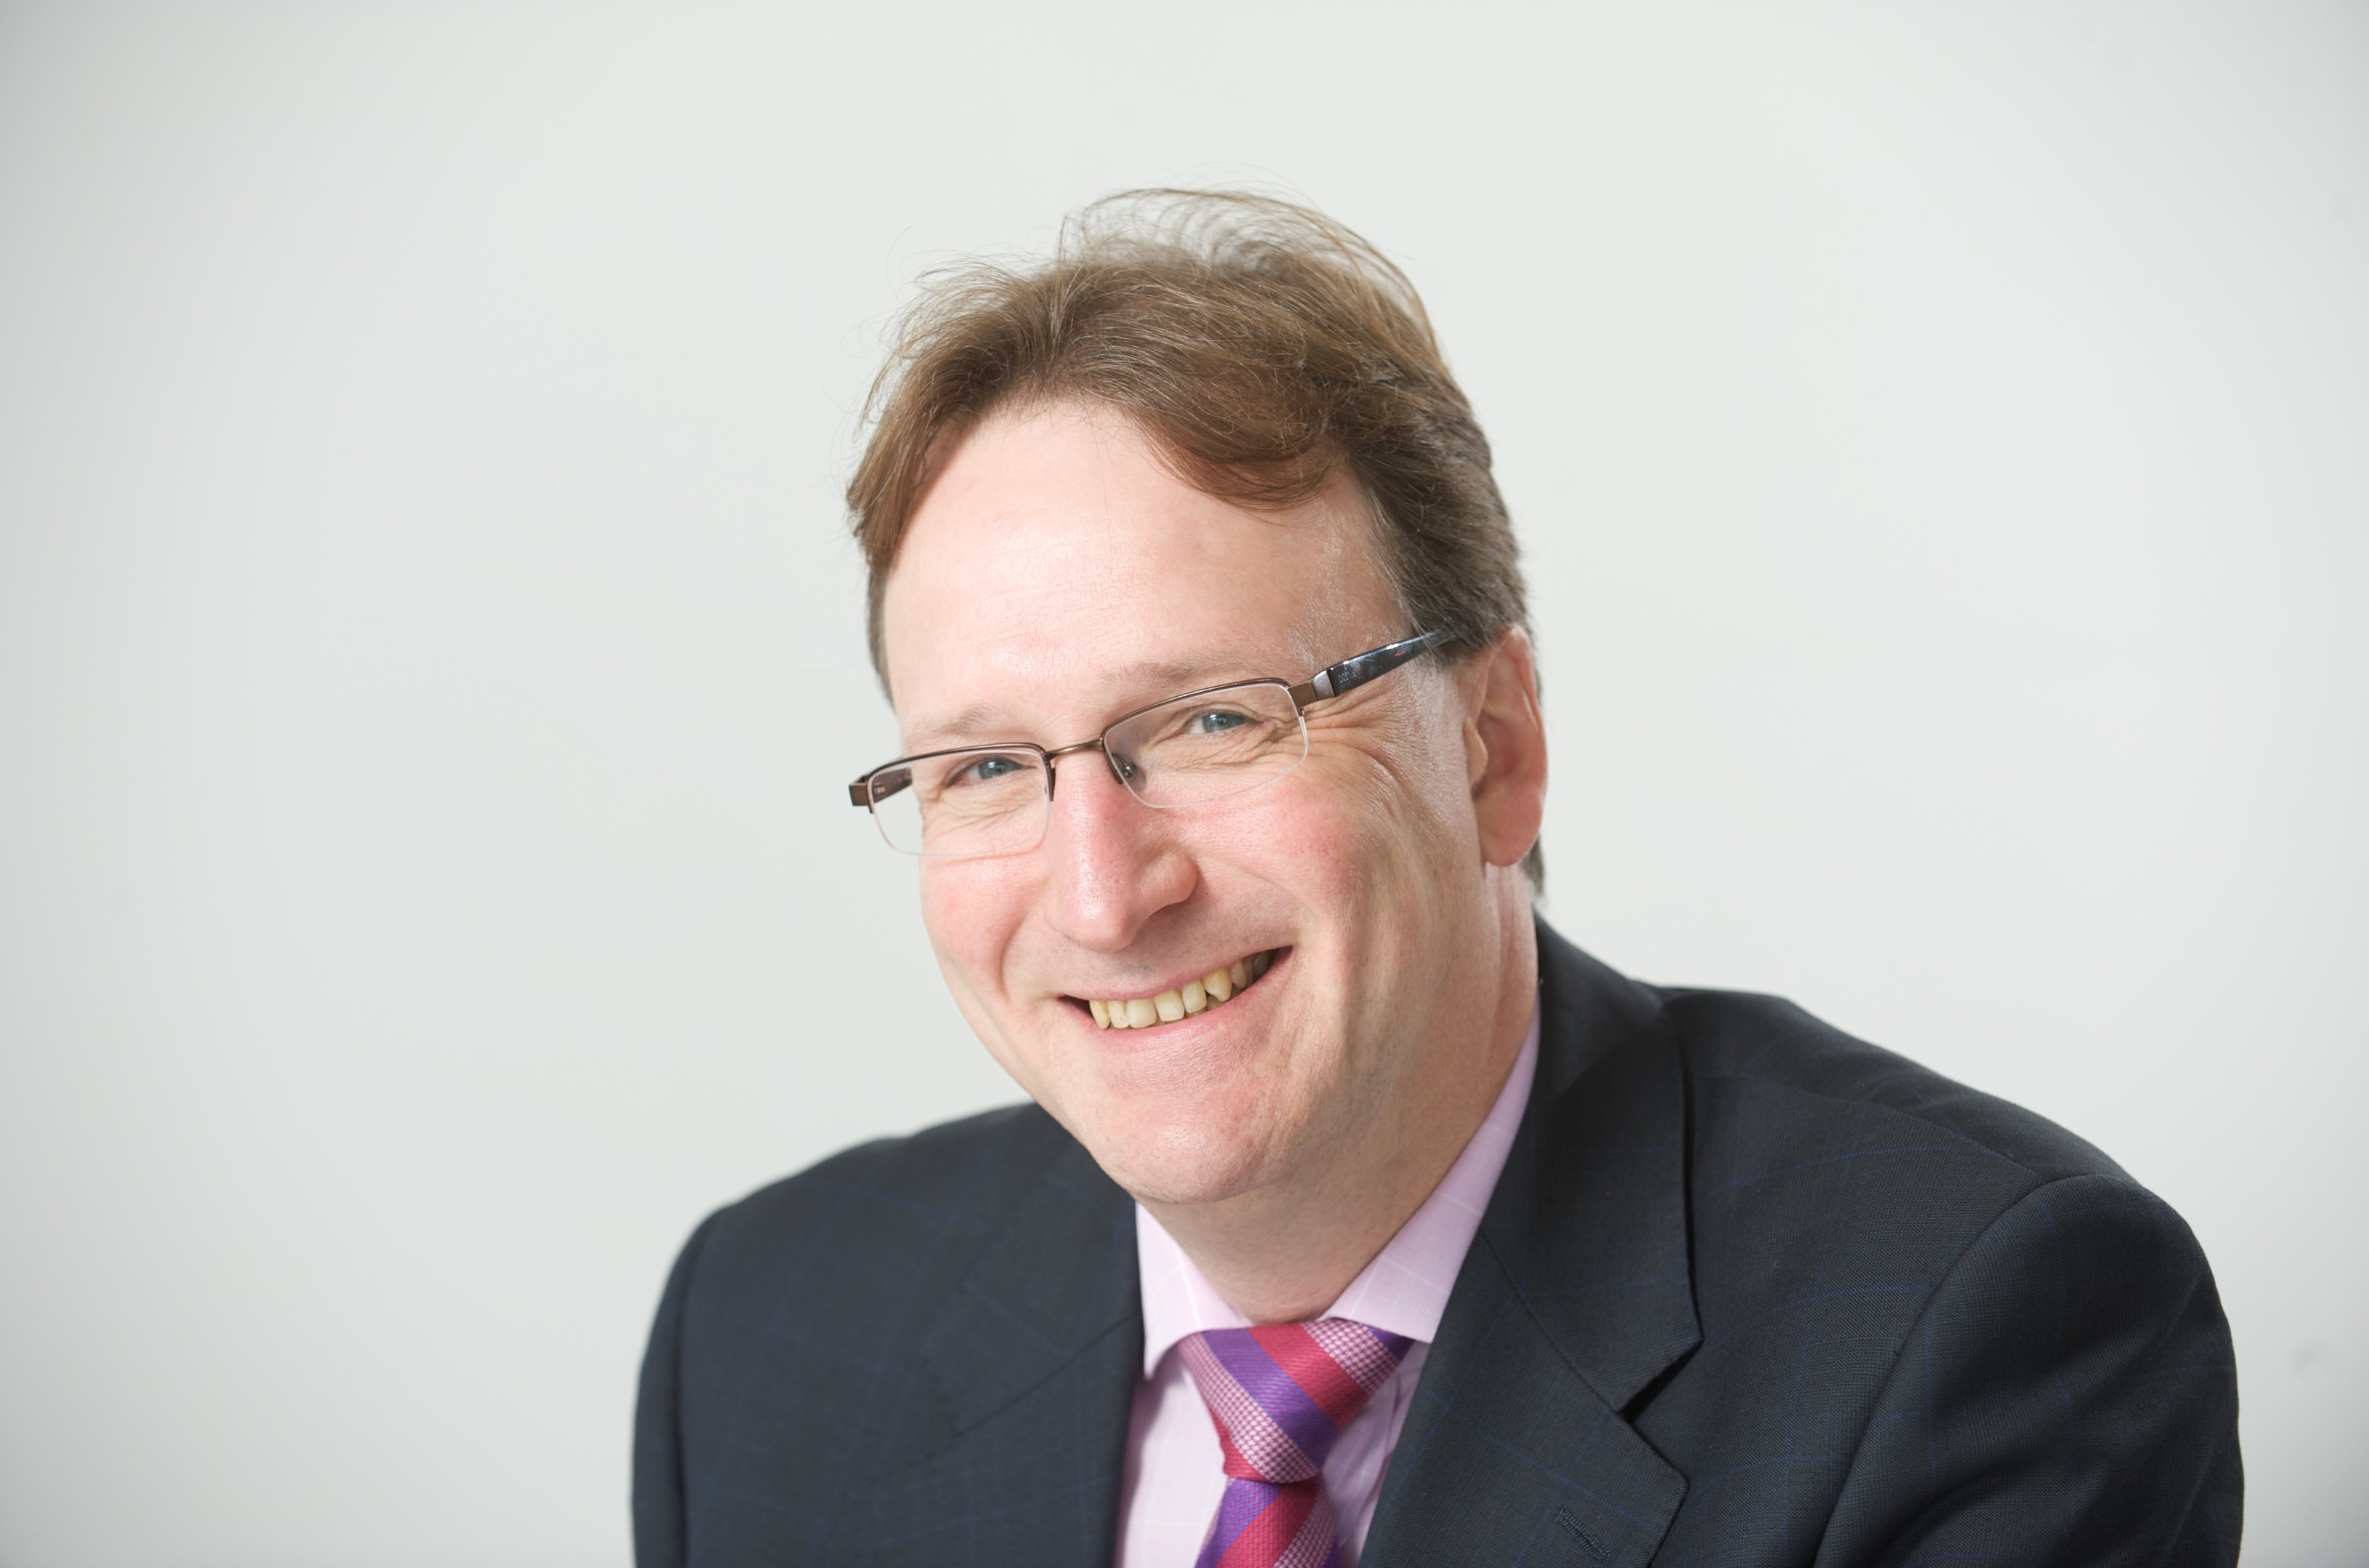 Richard Masters chairman for Scotland and Northern Ireland at Pinsent Masons